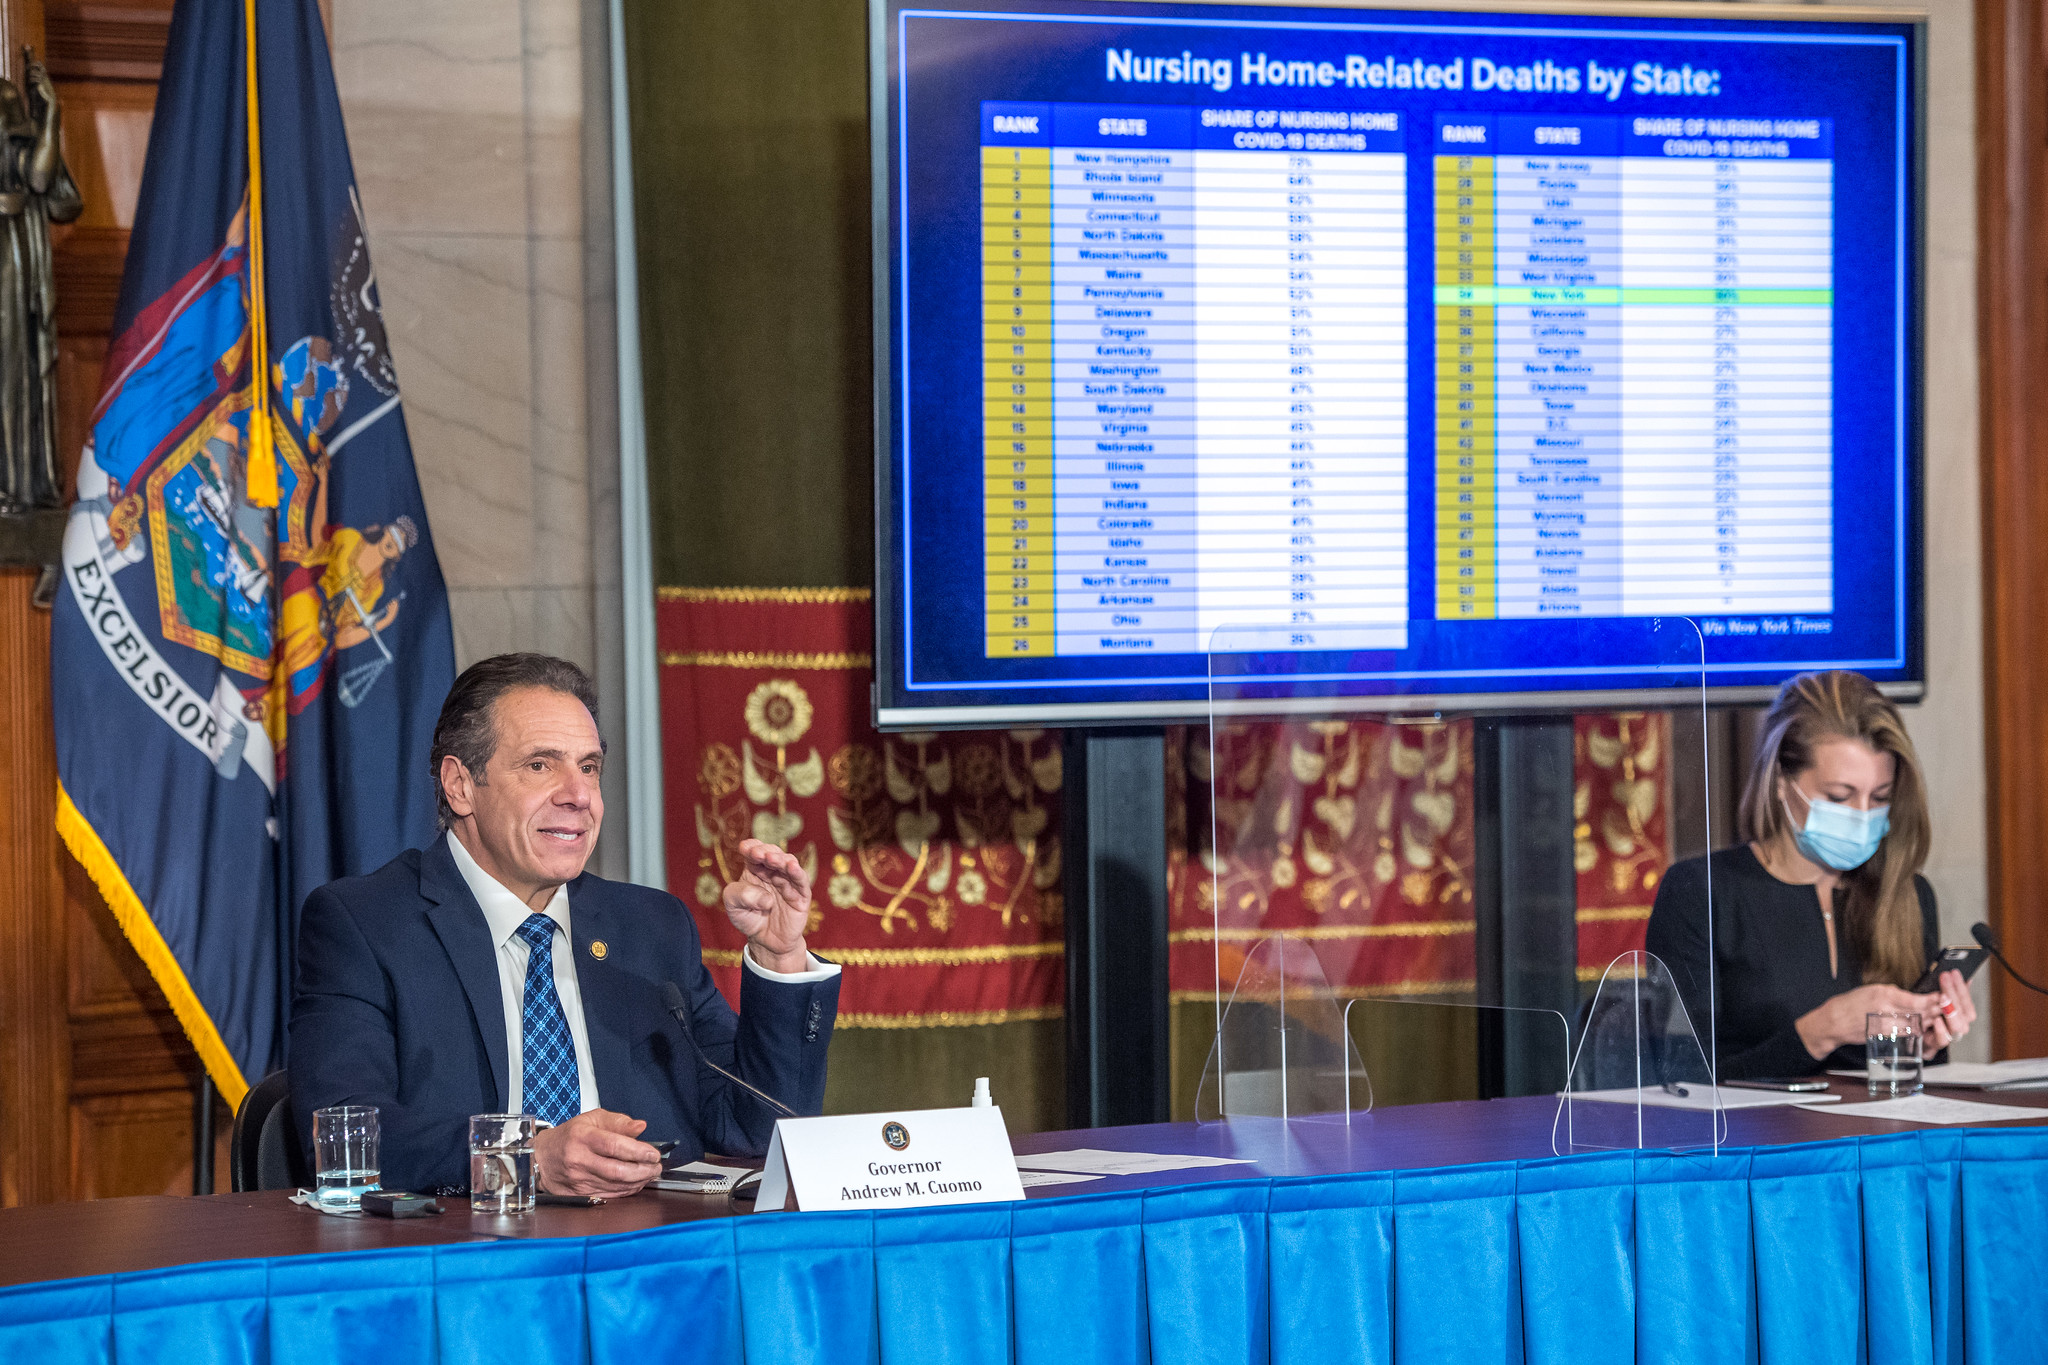 Governor Cuomo discussing nursing home deaths with a power point graphic behind him showing total nursing home deaths by state